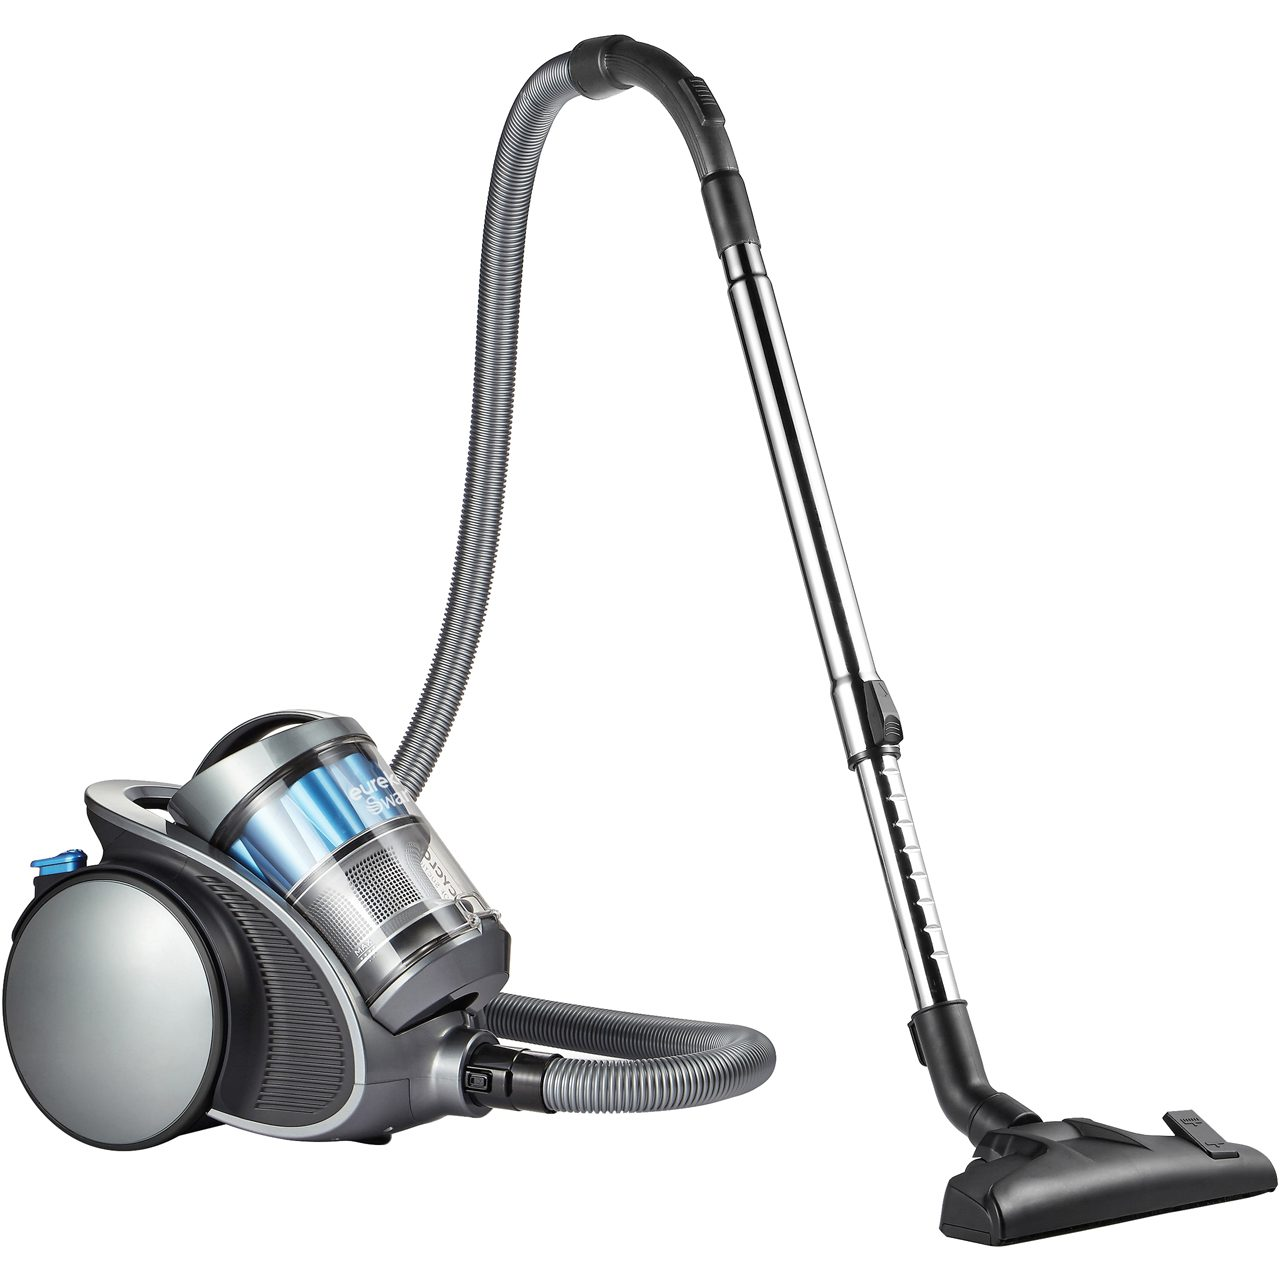 Swan Multi-Force Pet Bagless Cylinder Vacuum Cleaner